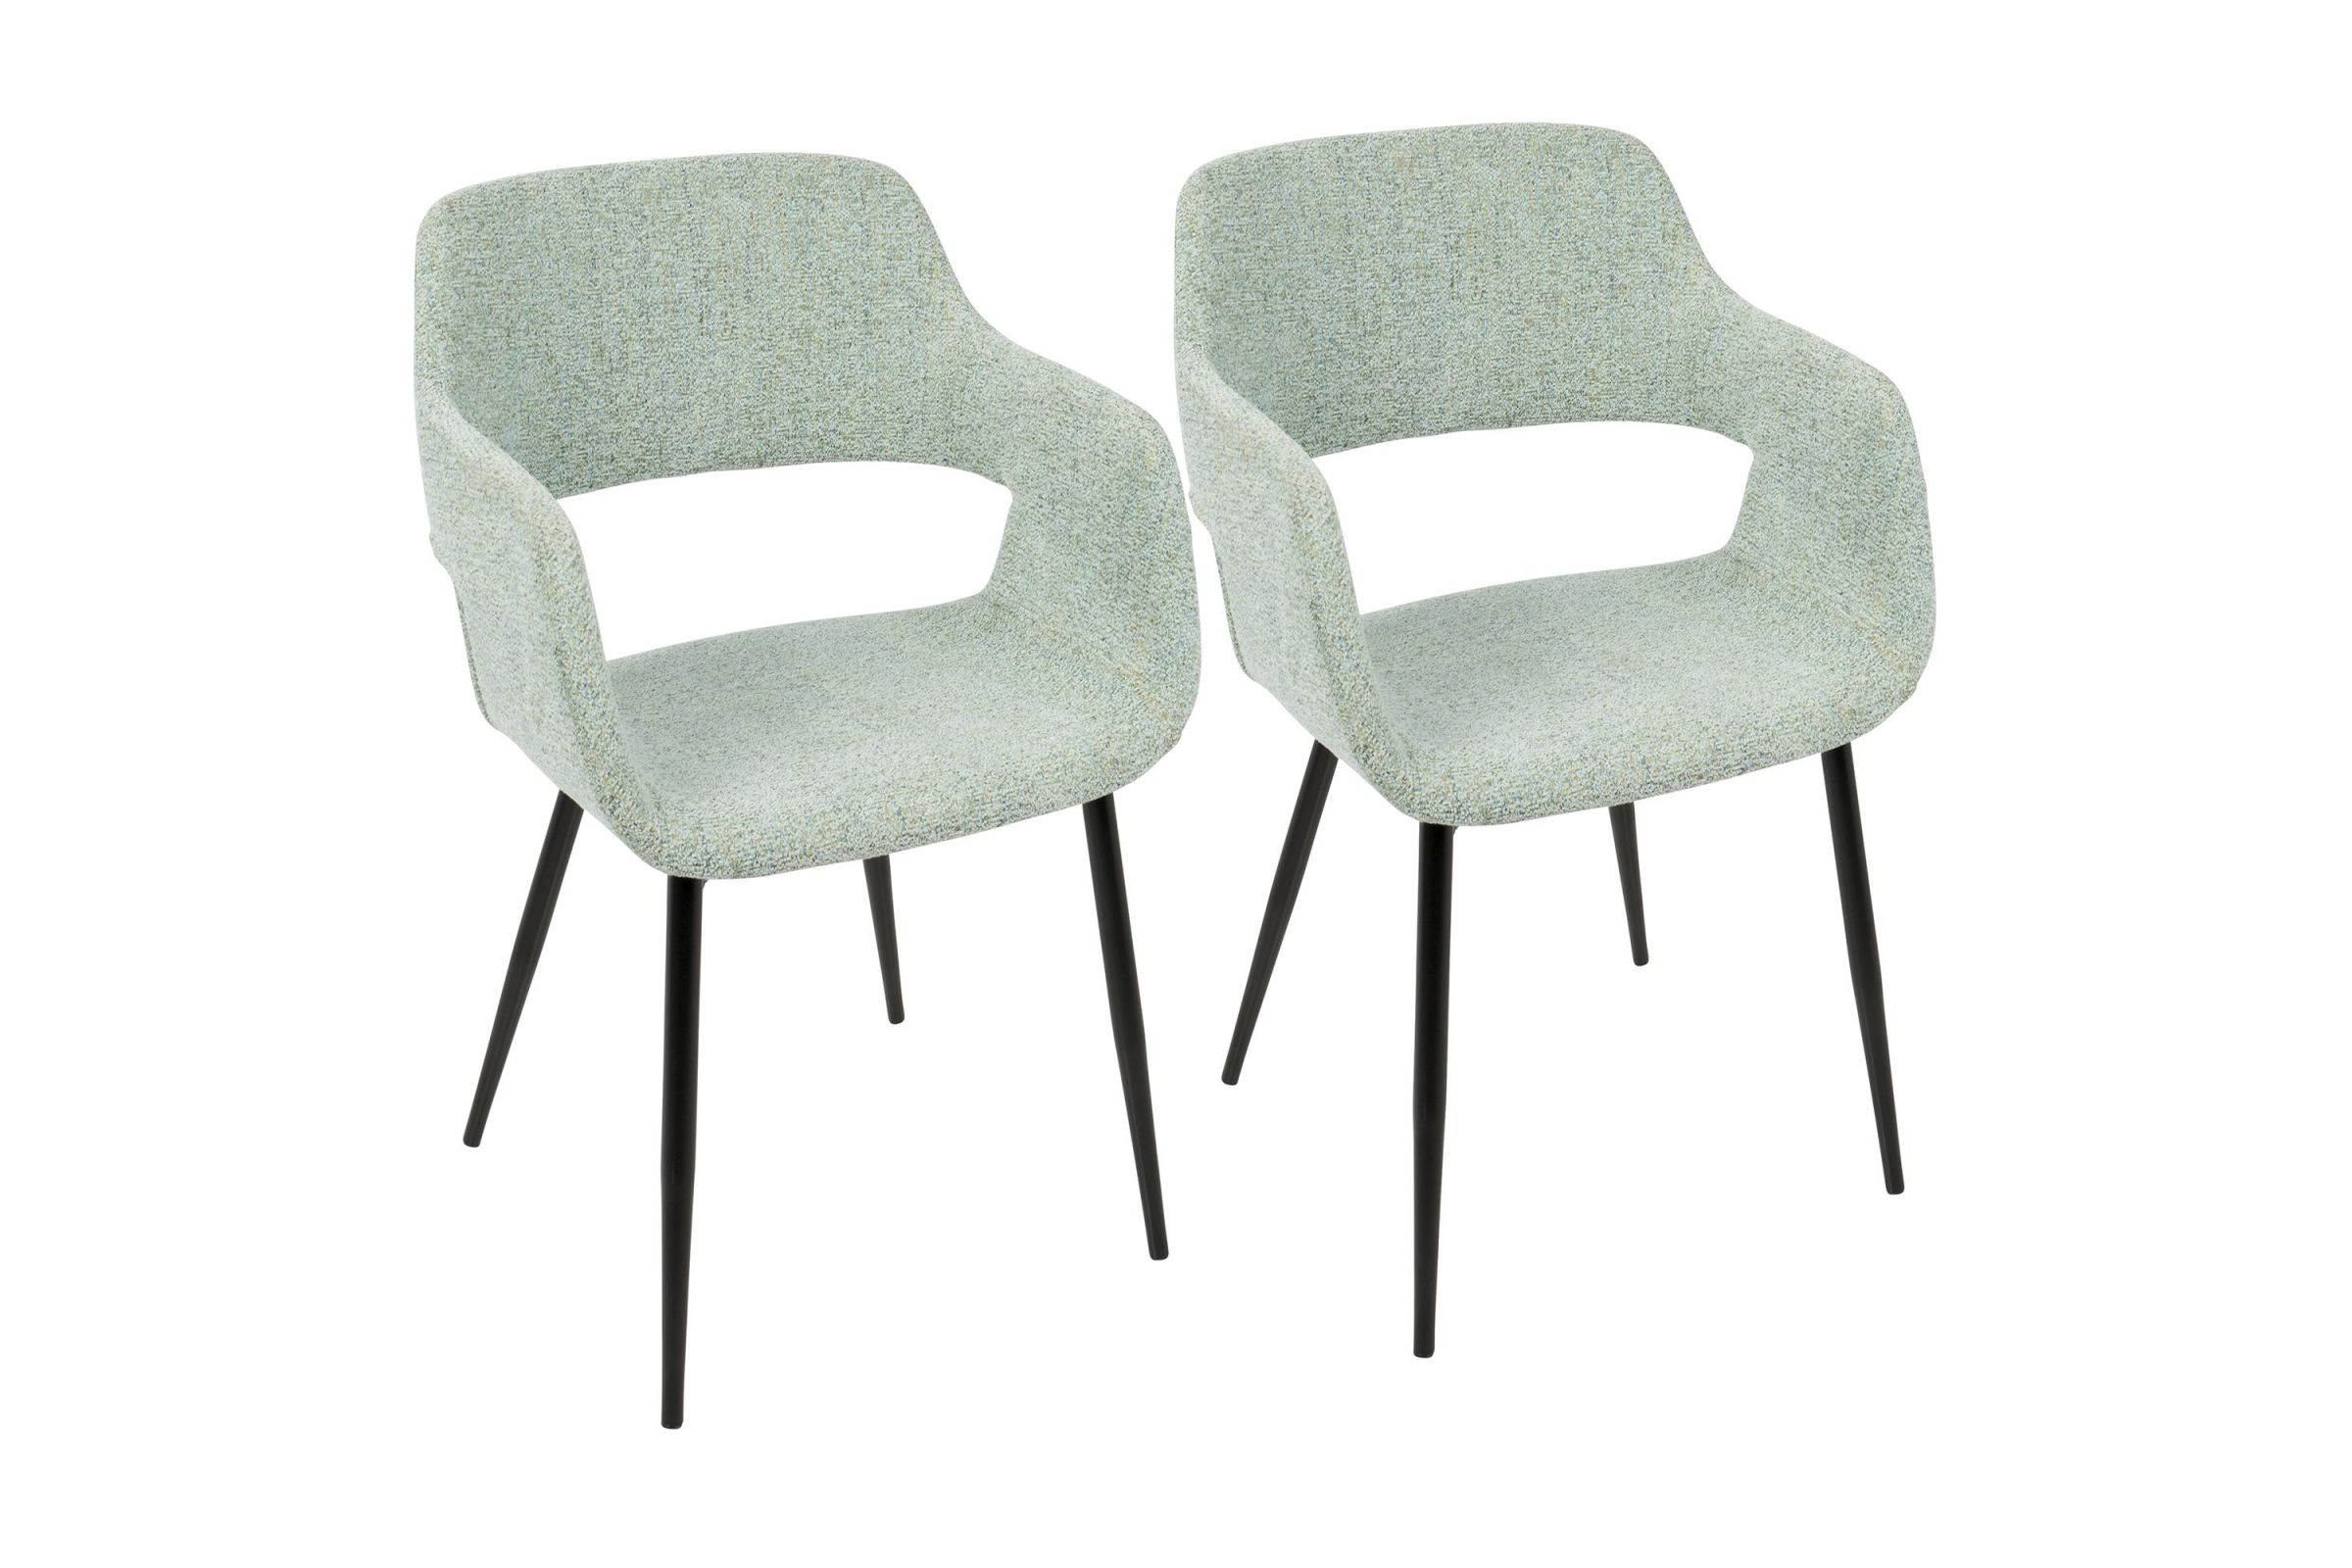 Margarite Mid Century Modern Dining Chairs Set Of 2 In Light